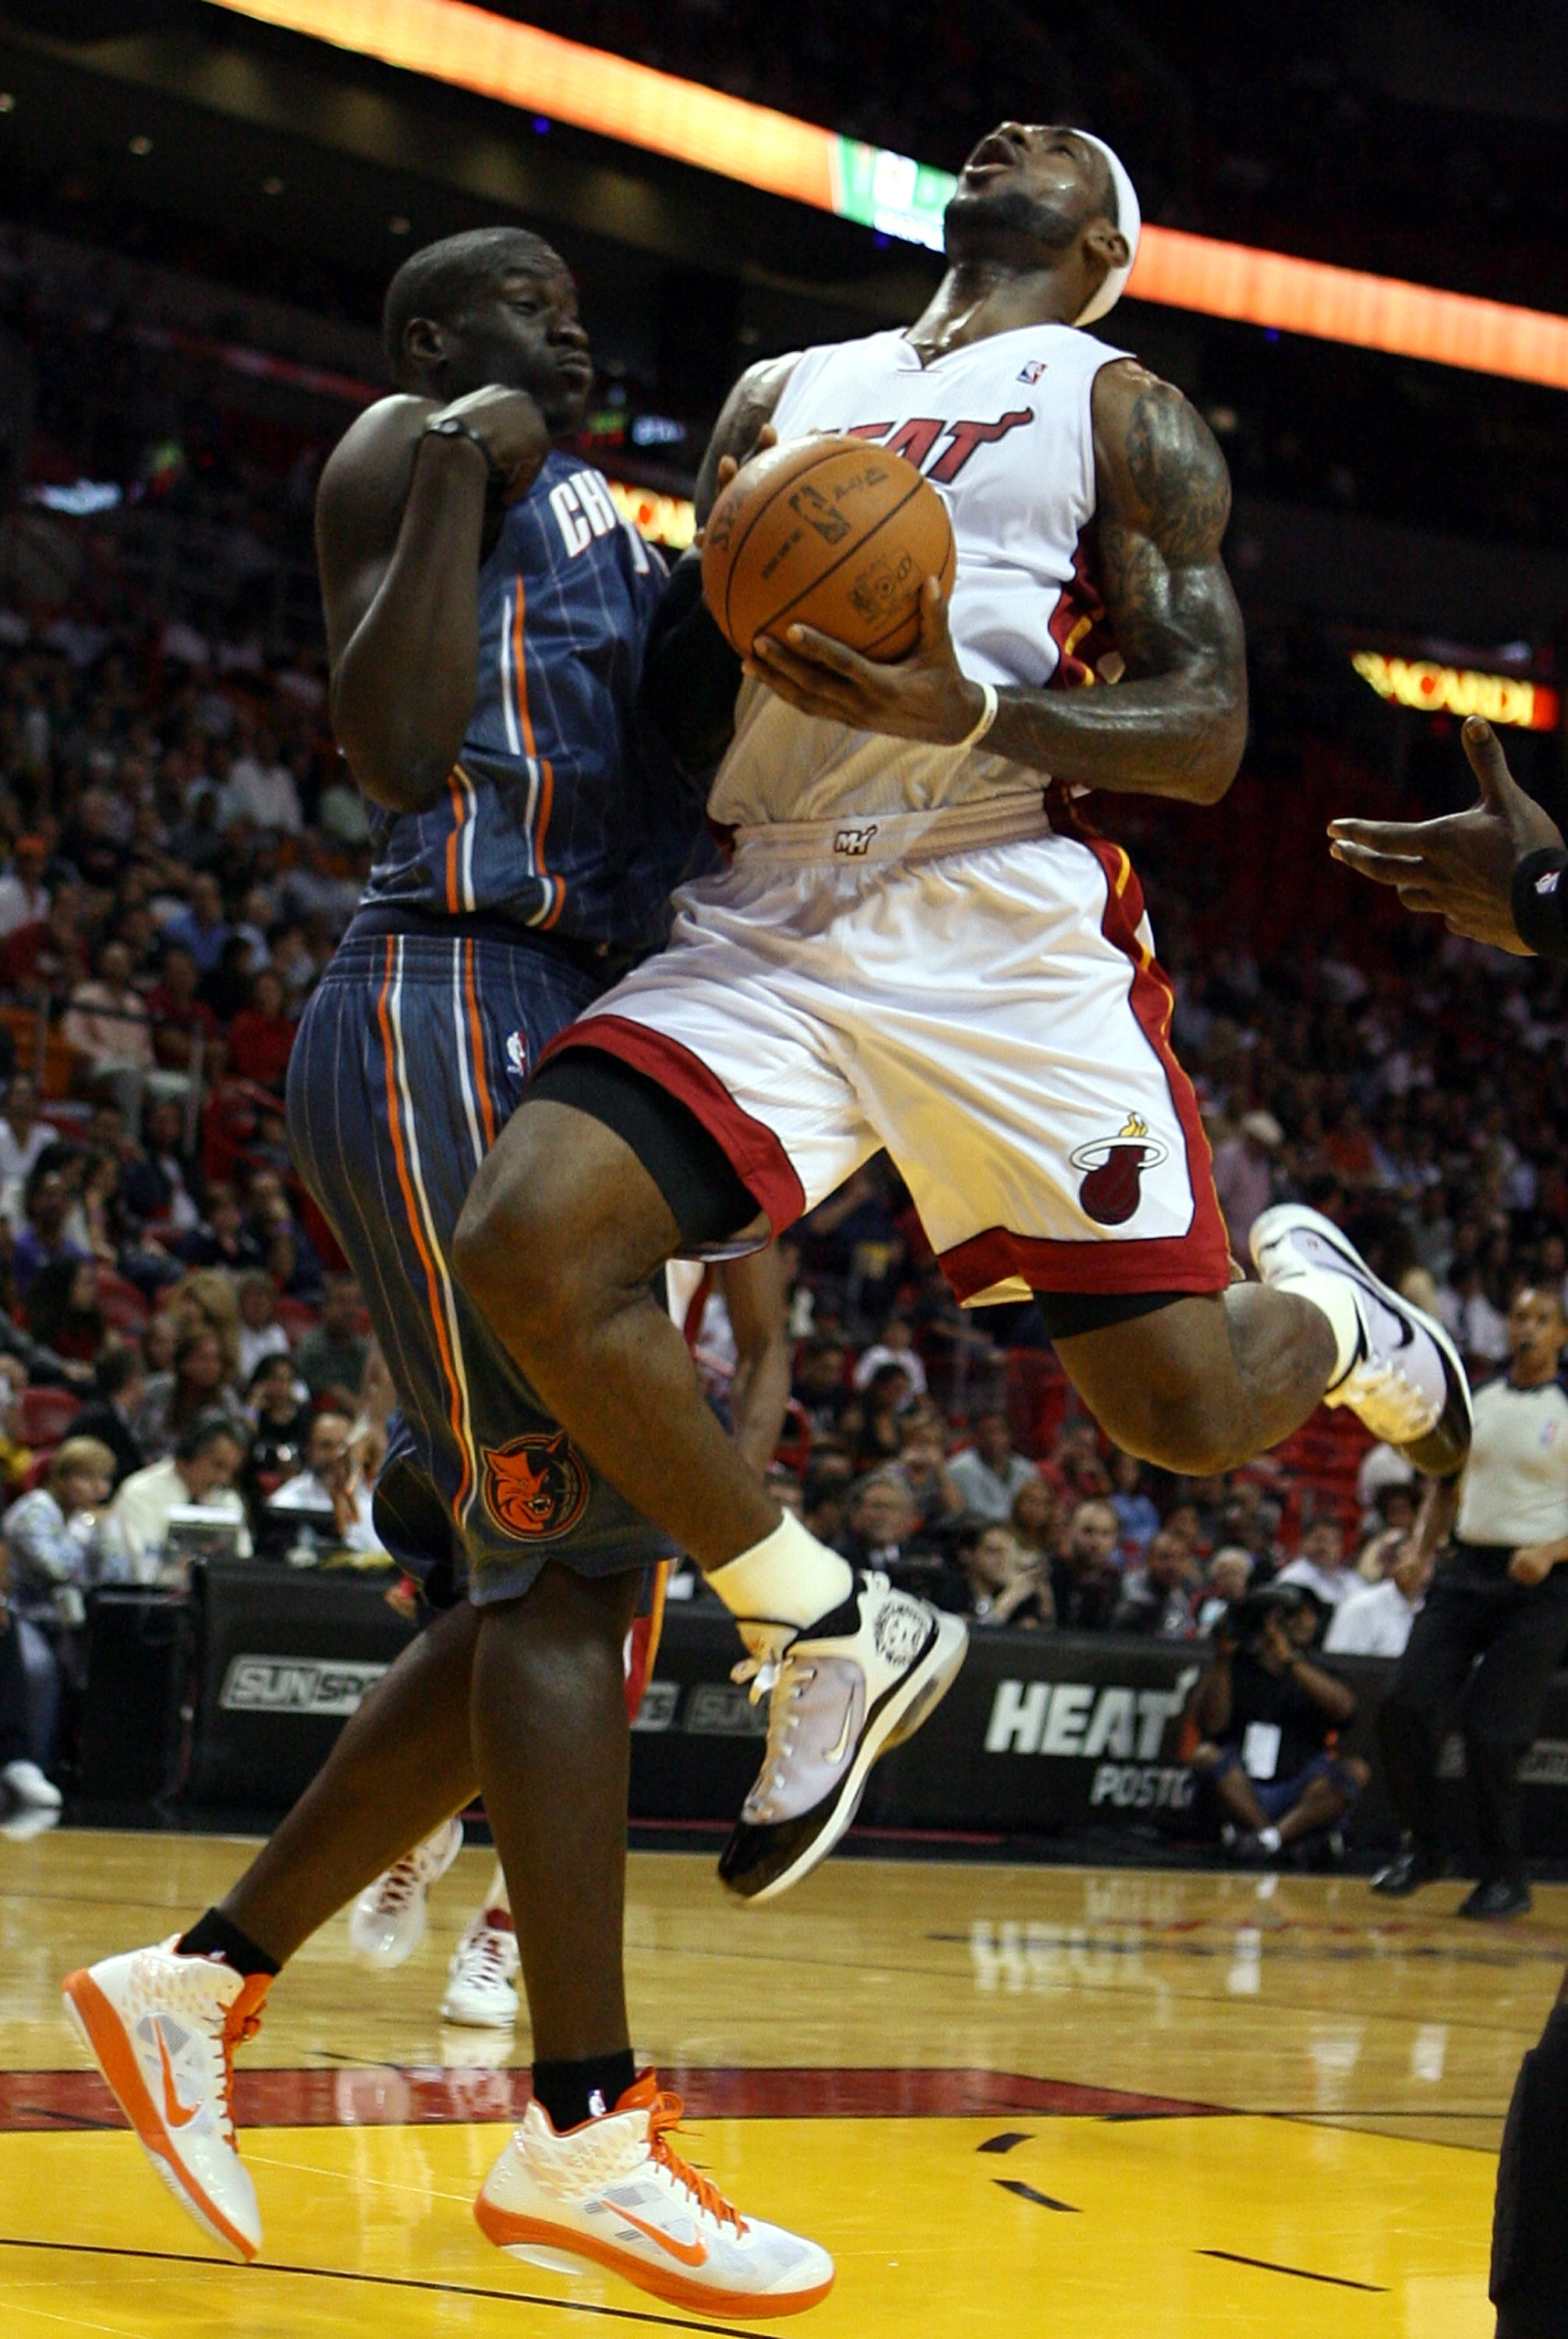 MIAMI - OCTOBER 18:  Forward LeBron James #6 of the Miami Heat is fouled by Boris Diaw #32 of the Charlotte Bobcats at American Airlines Arena on October 18, 2010 in Miami, Florida. NOTE TO USER: User expressly acknowledges and agrees that, by downloading